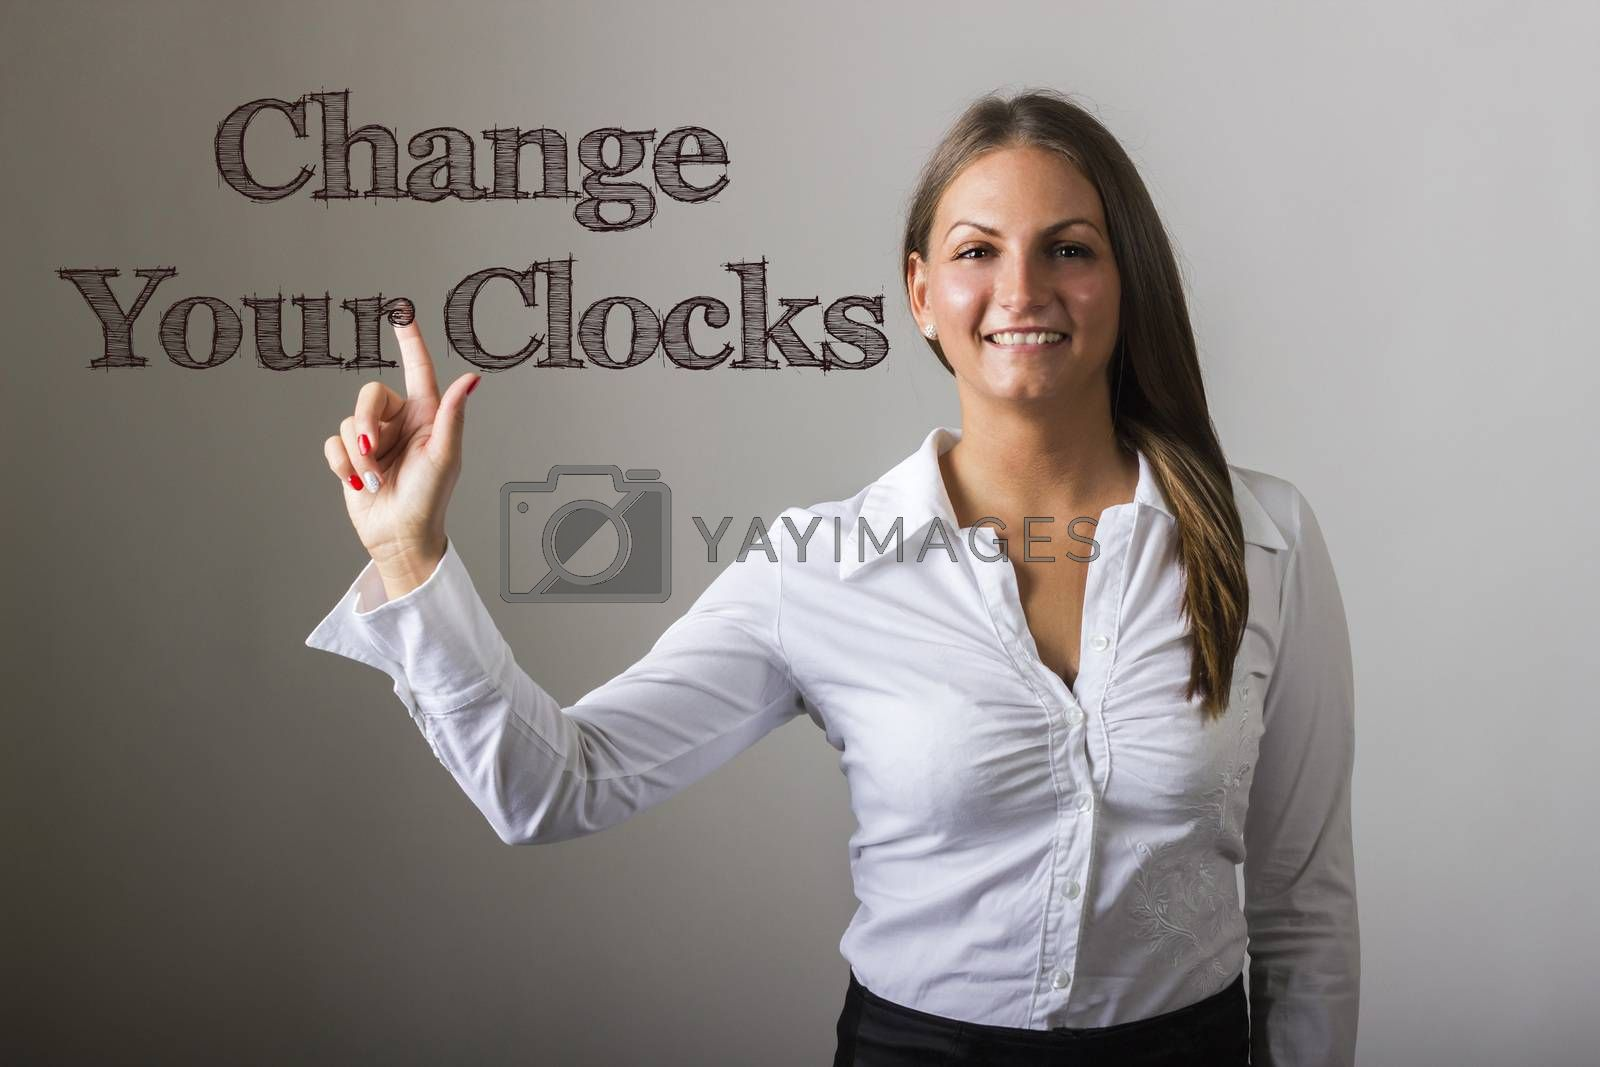 Change Your Clocks - Beautiful girl touching text on transparent surface - horizontal image